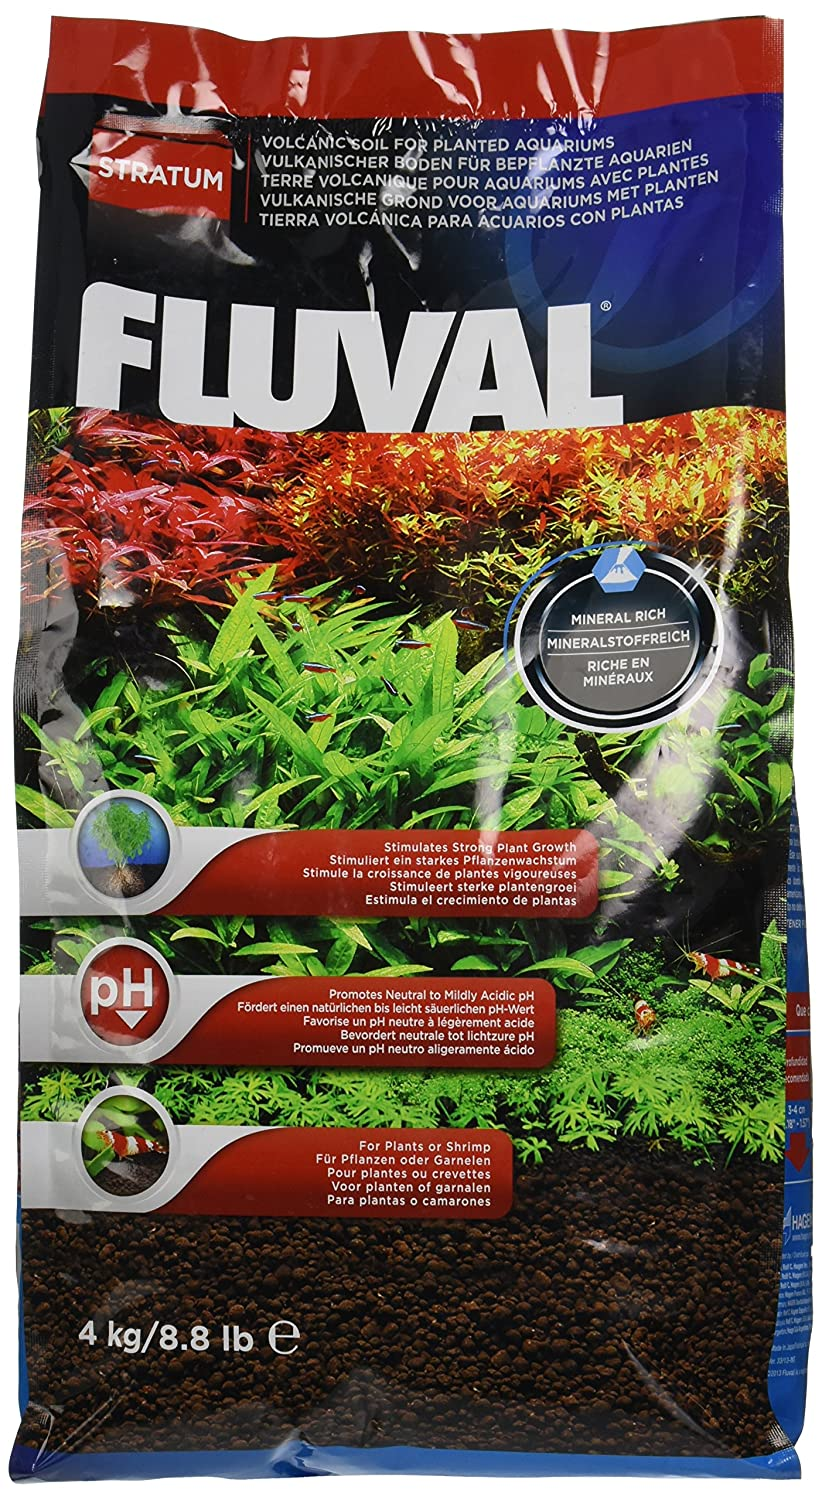 Fluval Plant U0026 Shrimp Stratum Aquarium Substrate 4kg: Amazon.co.uk: Pet  Supplies